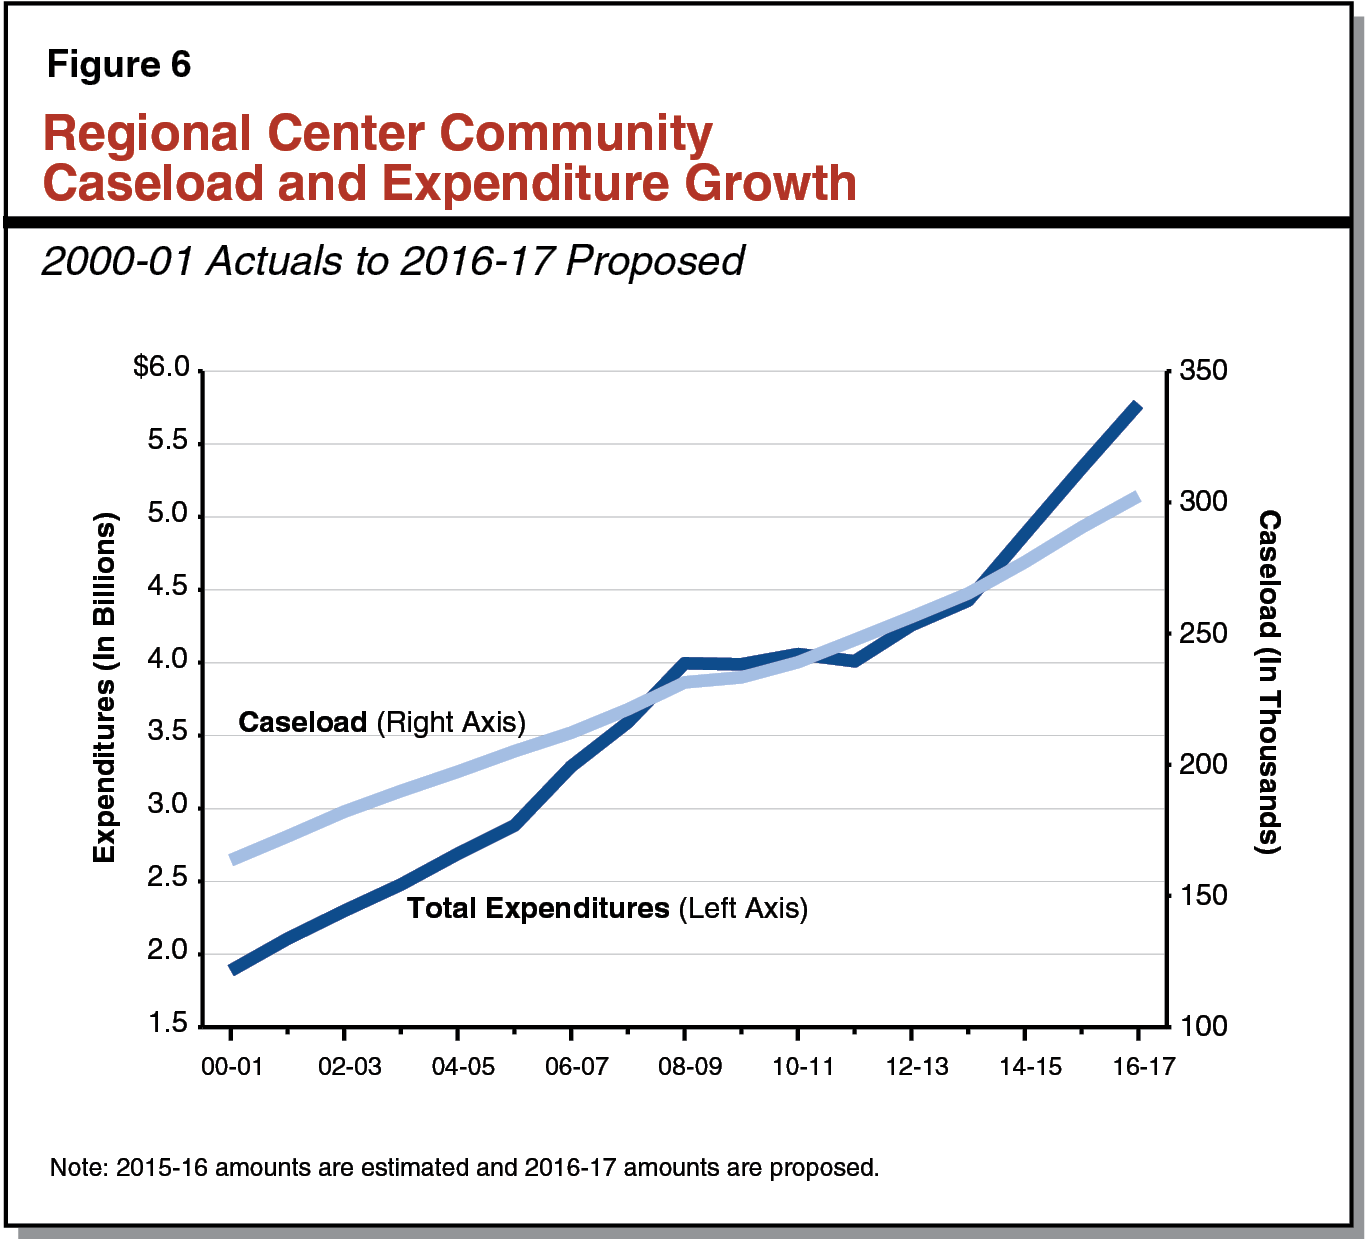 Figure 6 - Regional Center Community Caseload and Expenditure Growth